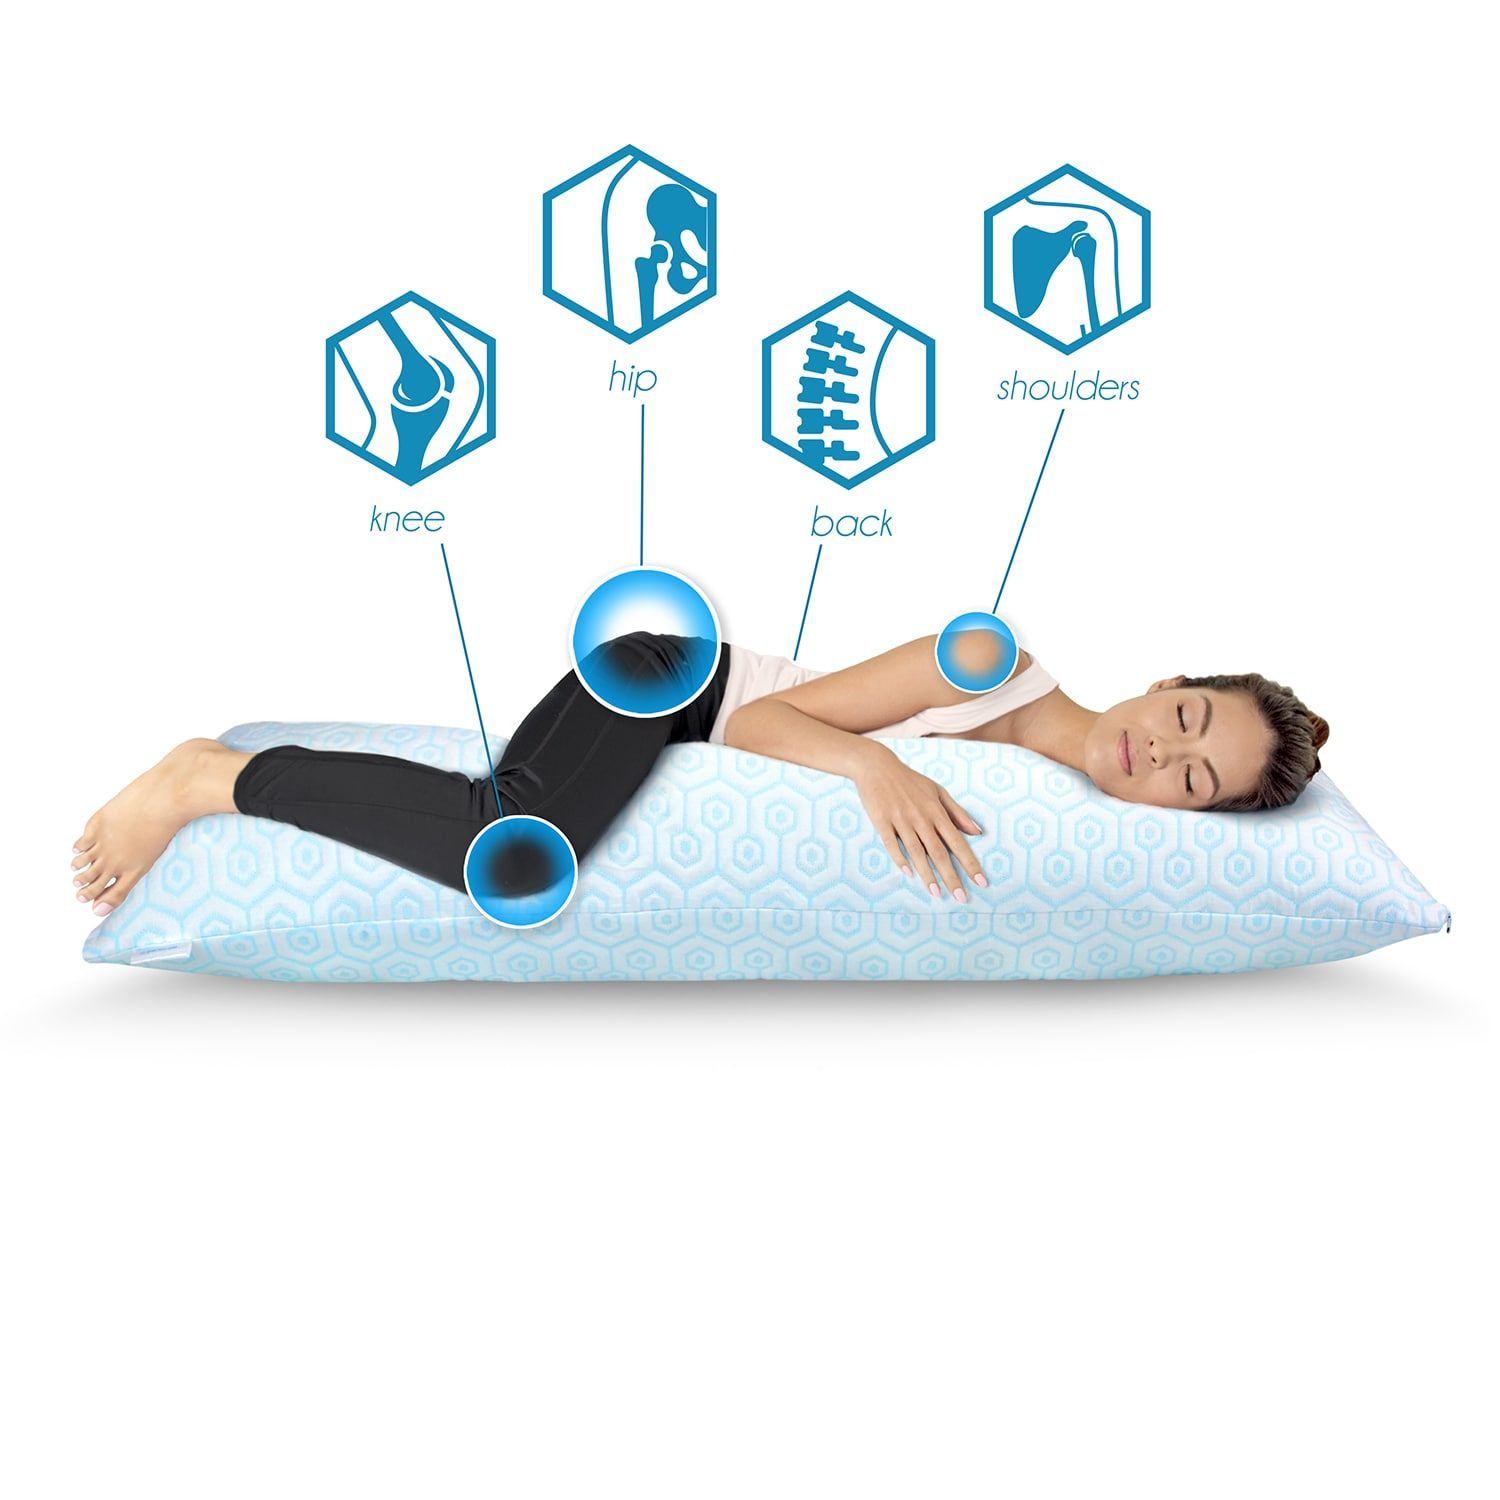 Hydrologie Cooling Body Pillow Cooling Hydrologie Pillow